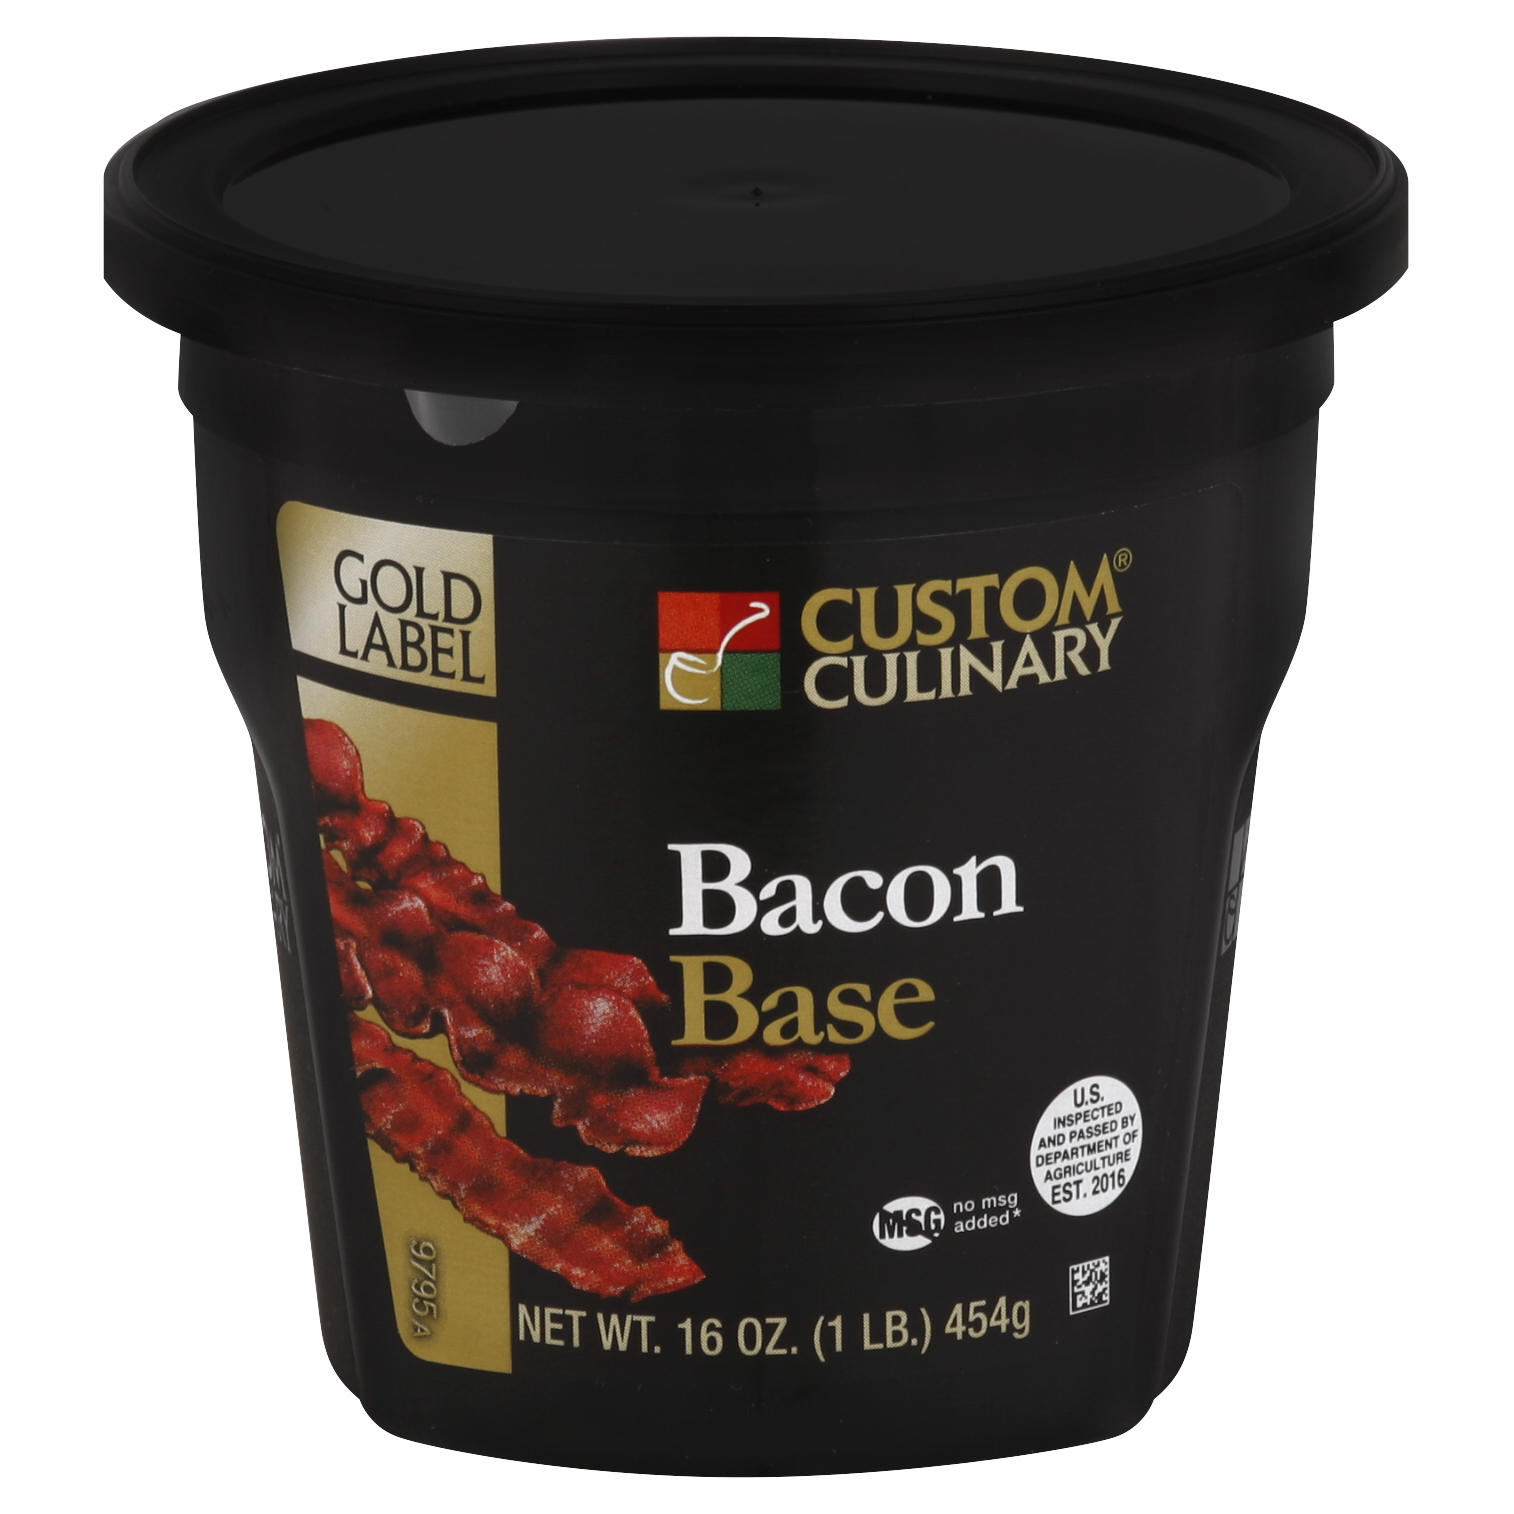 9795 - GOLD LABEL Bacon Base No MSG Added